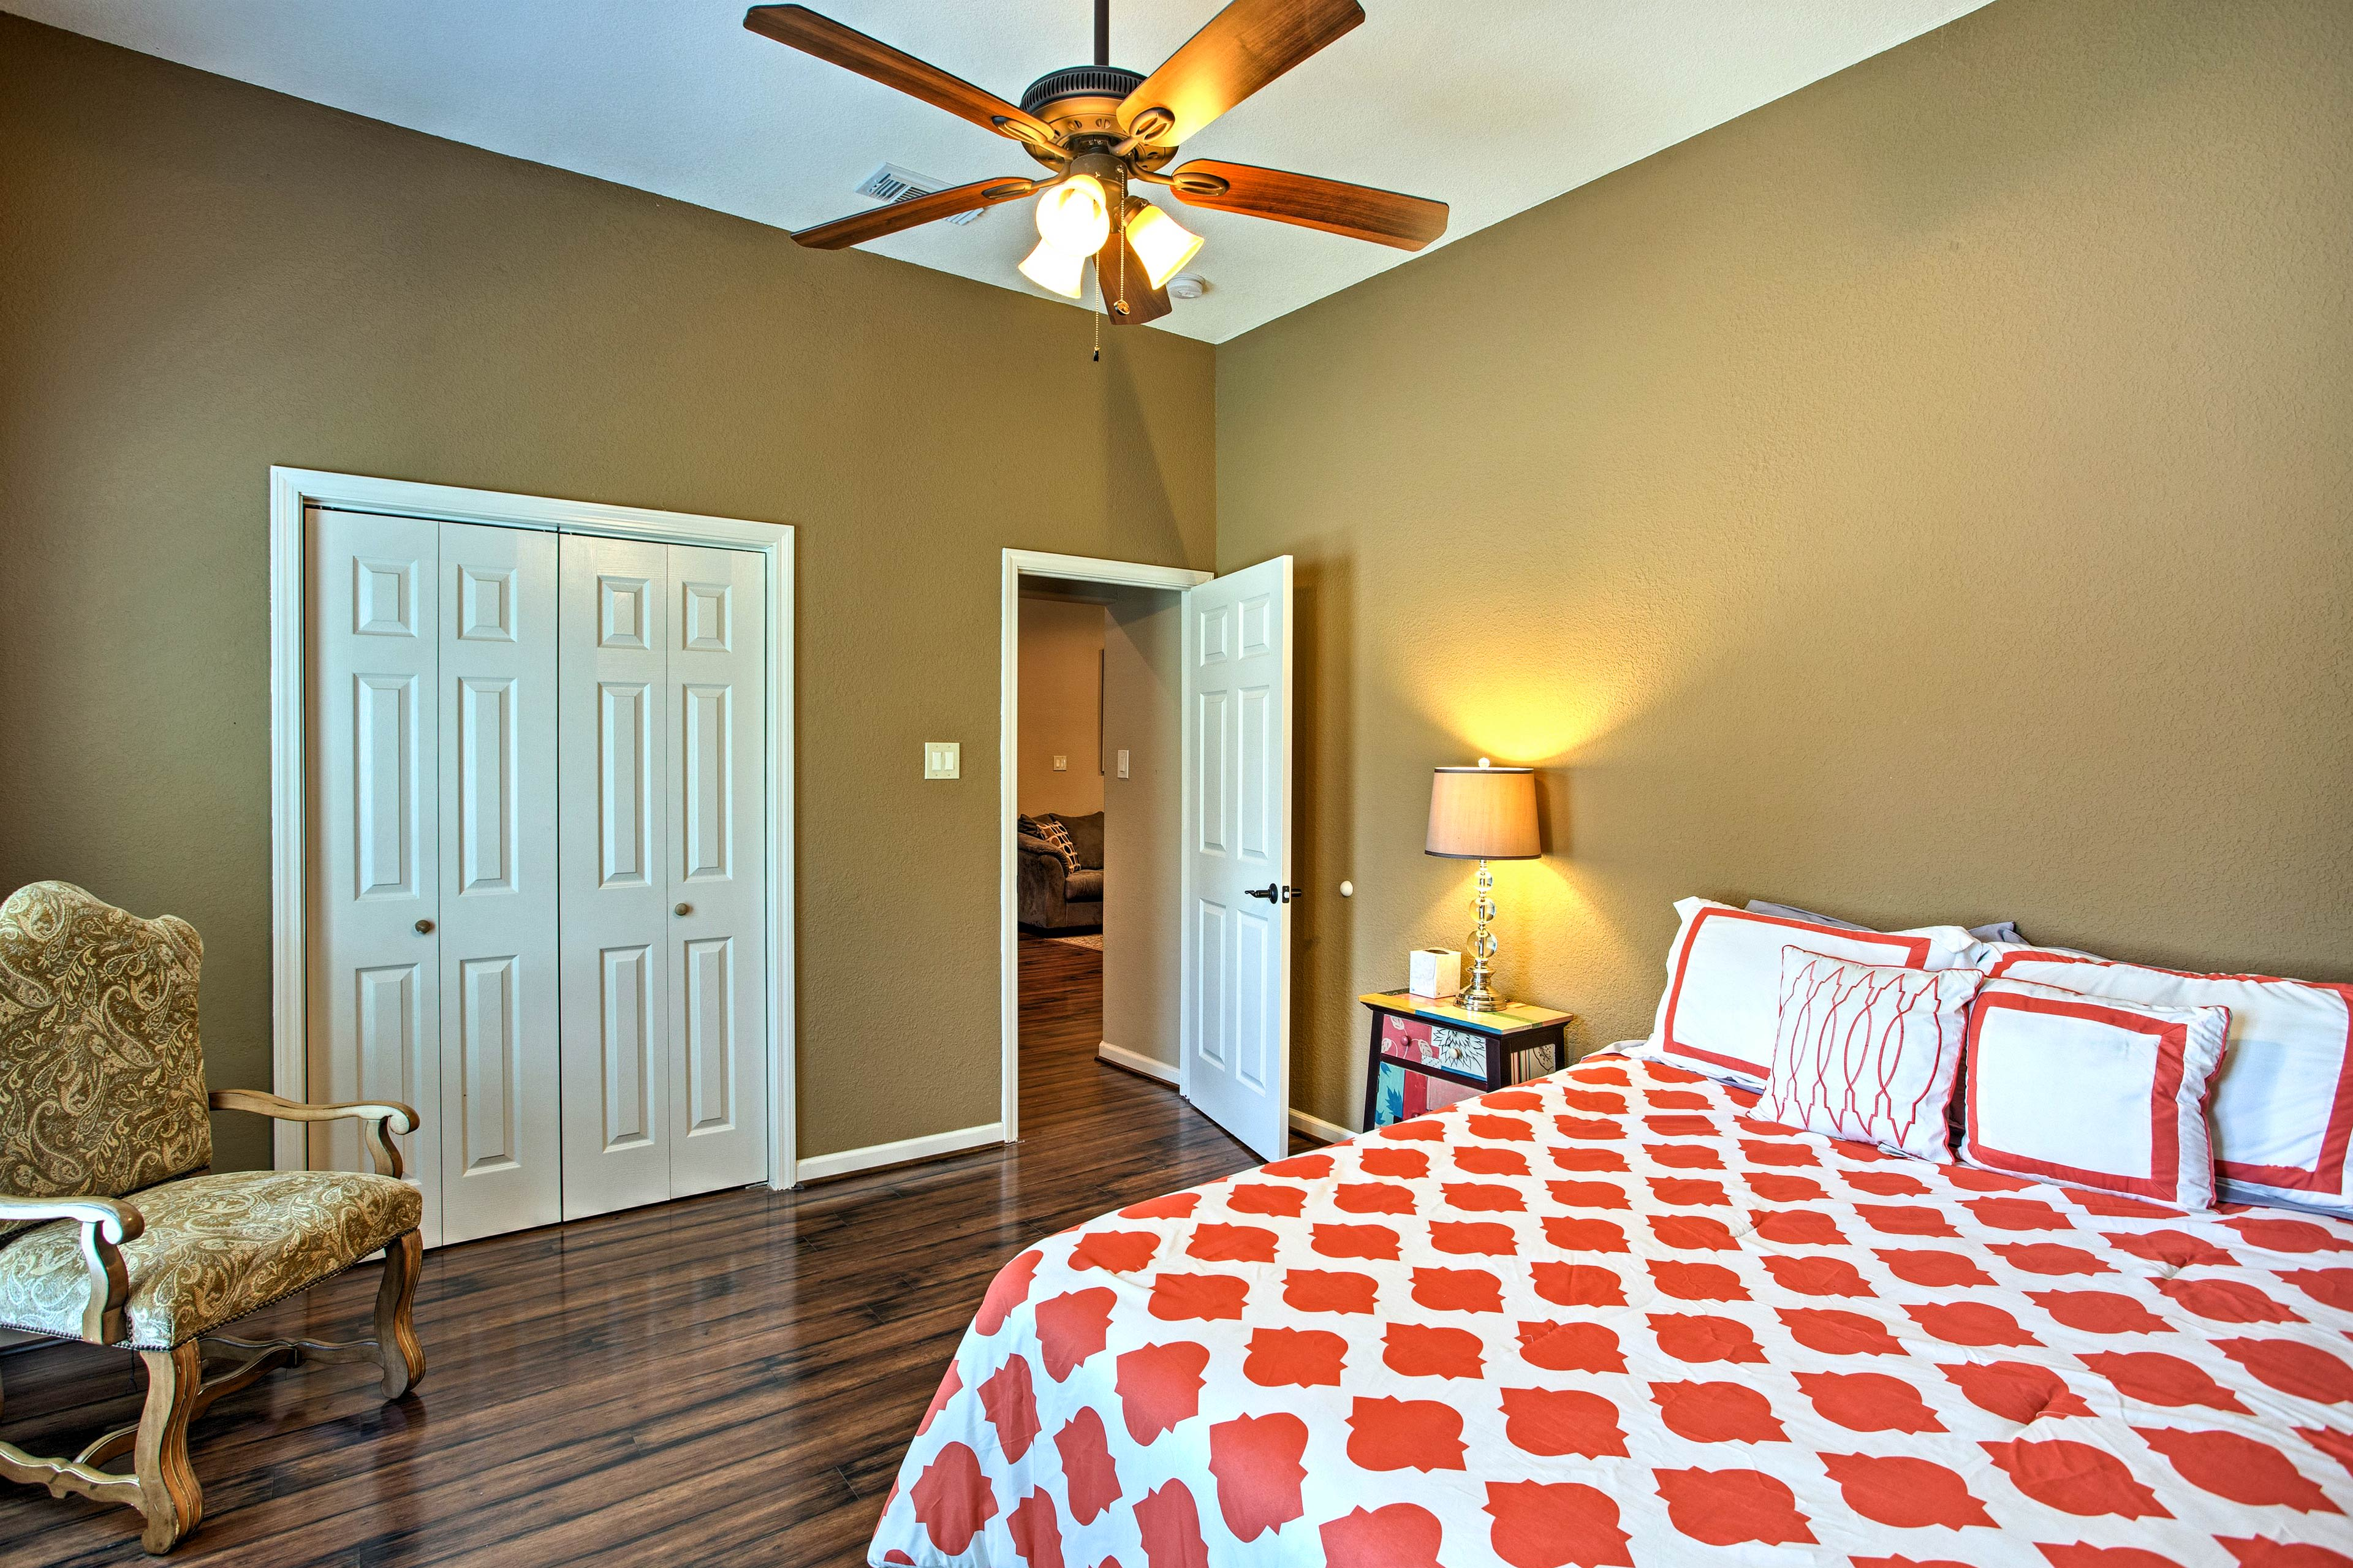 Keep things cool with the ceiling fan and central AC.